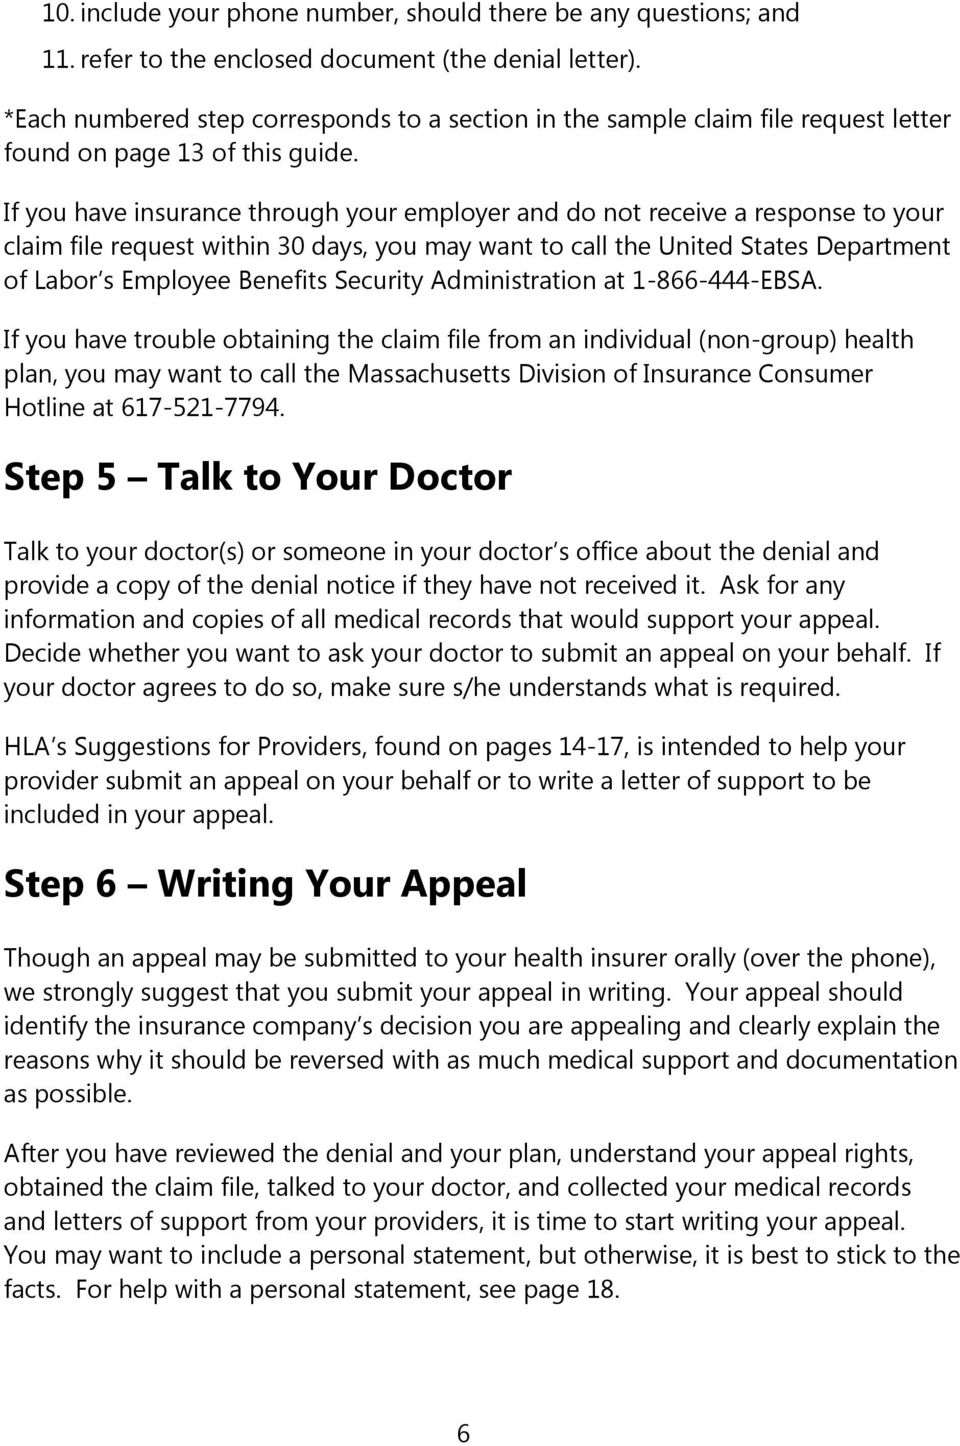 If you have insurance through your employer and do not receive a response to your claim file request within 30 days, you may want to call the United States Department of Labor s Employee Benefits